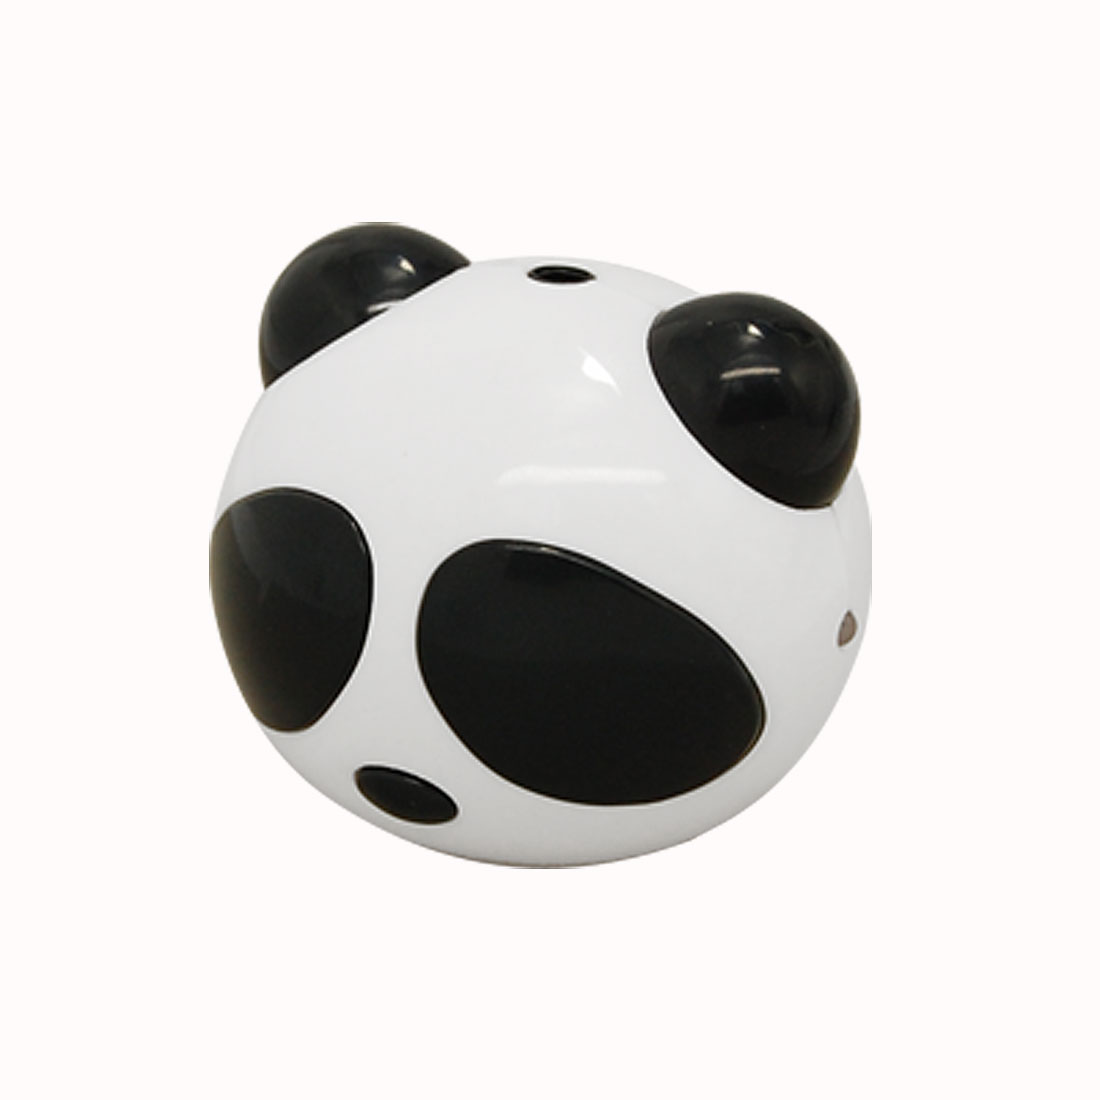 Pocket Size Cute Panda 3.5mm USB Sound Box Speaker